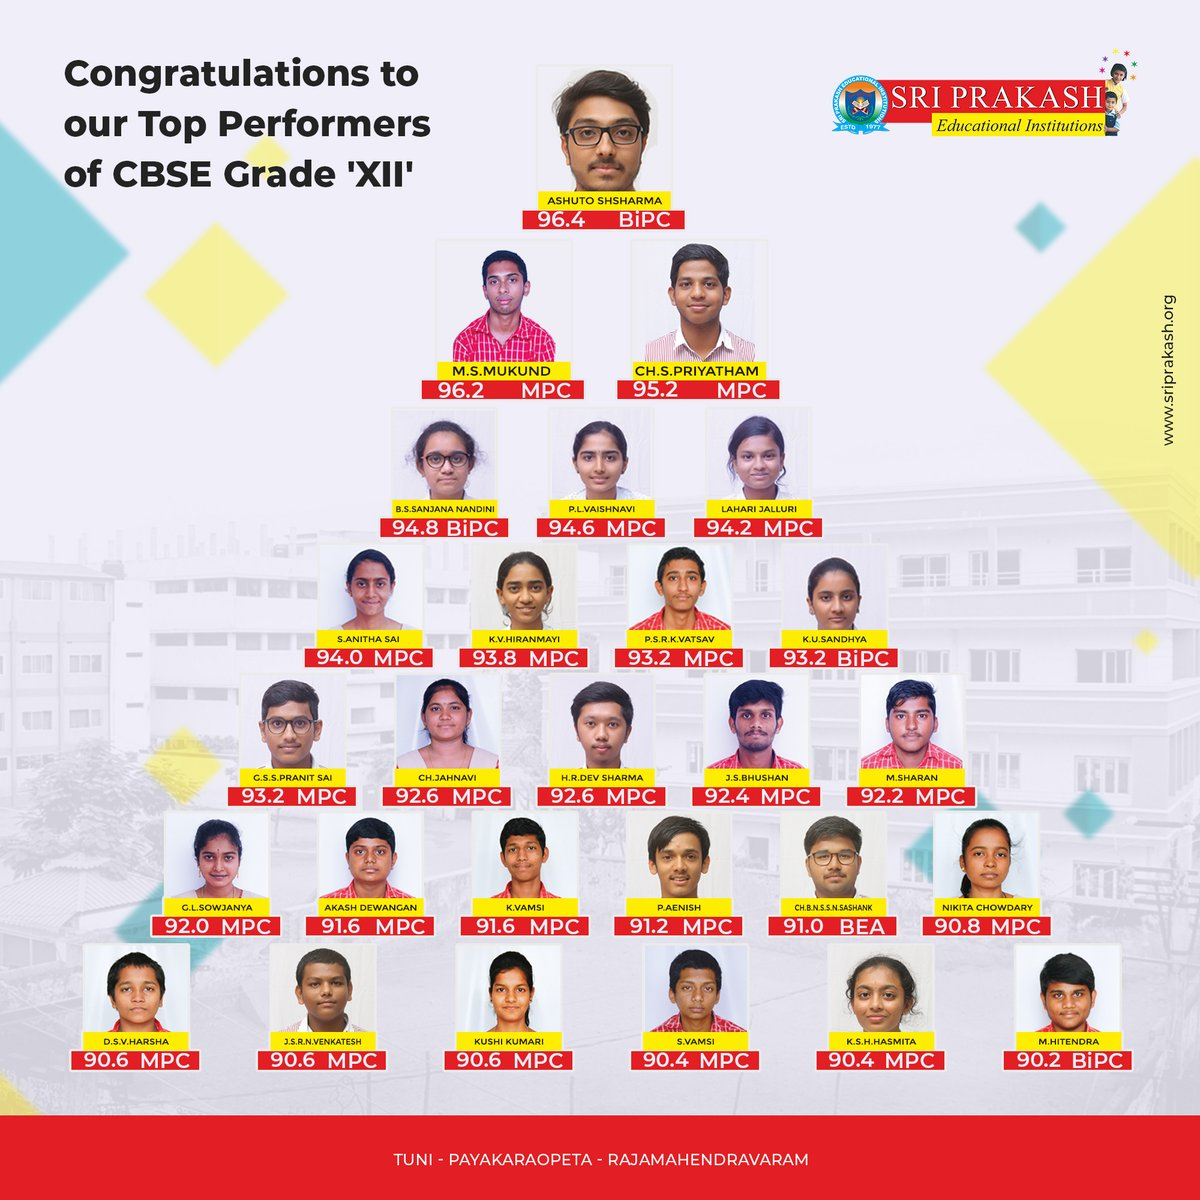 Congratulation to all the students for achieving tremendous scores in CBSE 'XII' Grade!     Wishing you a bright future ahead.   For Admissions: https://bit.ly/2ZV3MRL     #India #teaching #Science #learn #onlineclass #English #studentlife #SPSS #SriPrakash #CBSE #CBSEResults pic.twitter.com/RaG7iJOyyS